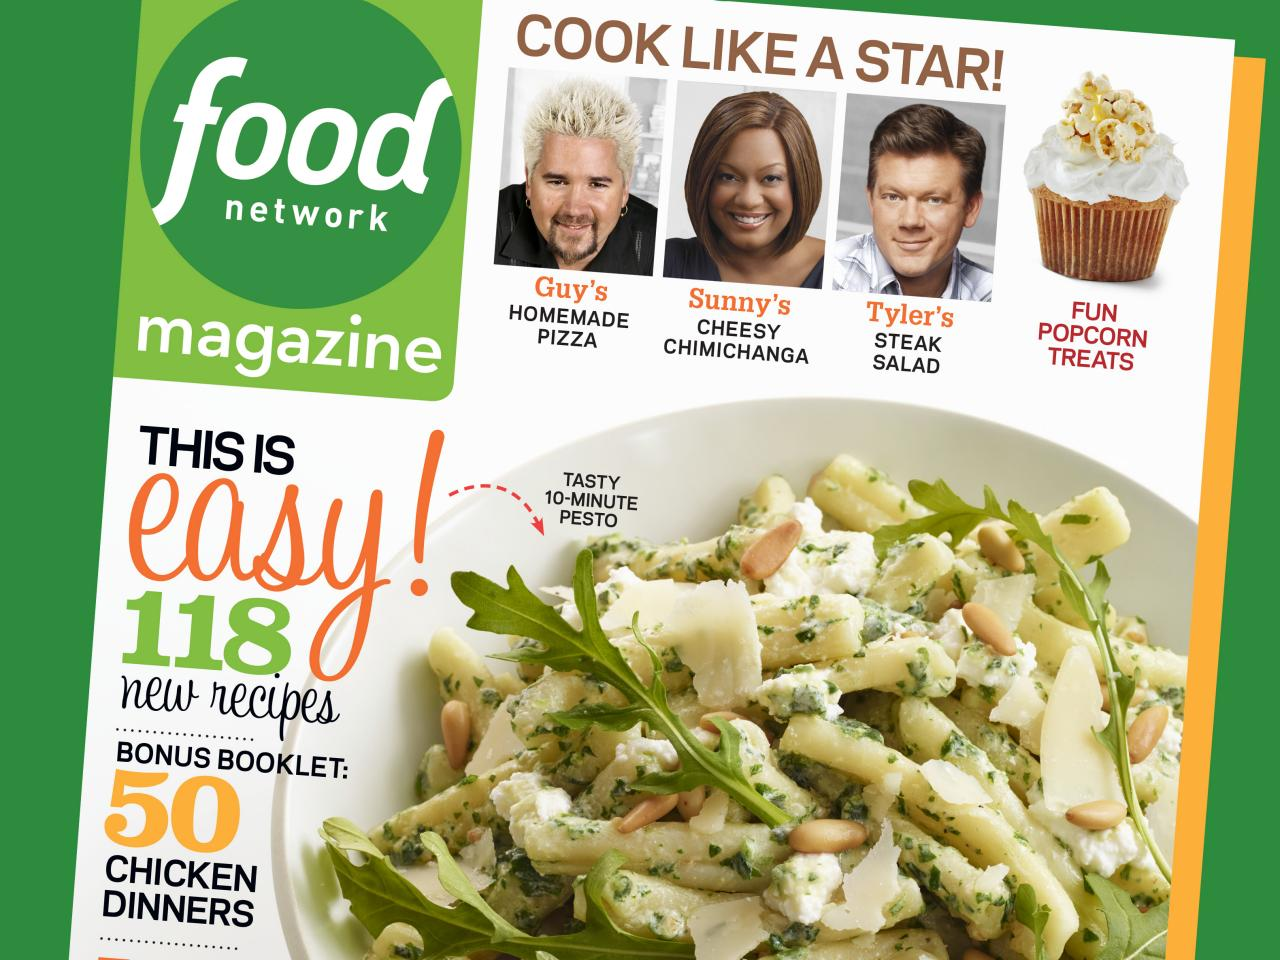 Food network magazine september 2013 recipe index recipes and food network magazine september 2013 recipe index forumfinder Choice Image